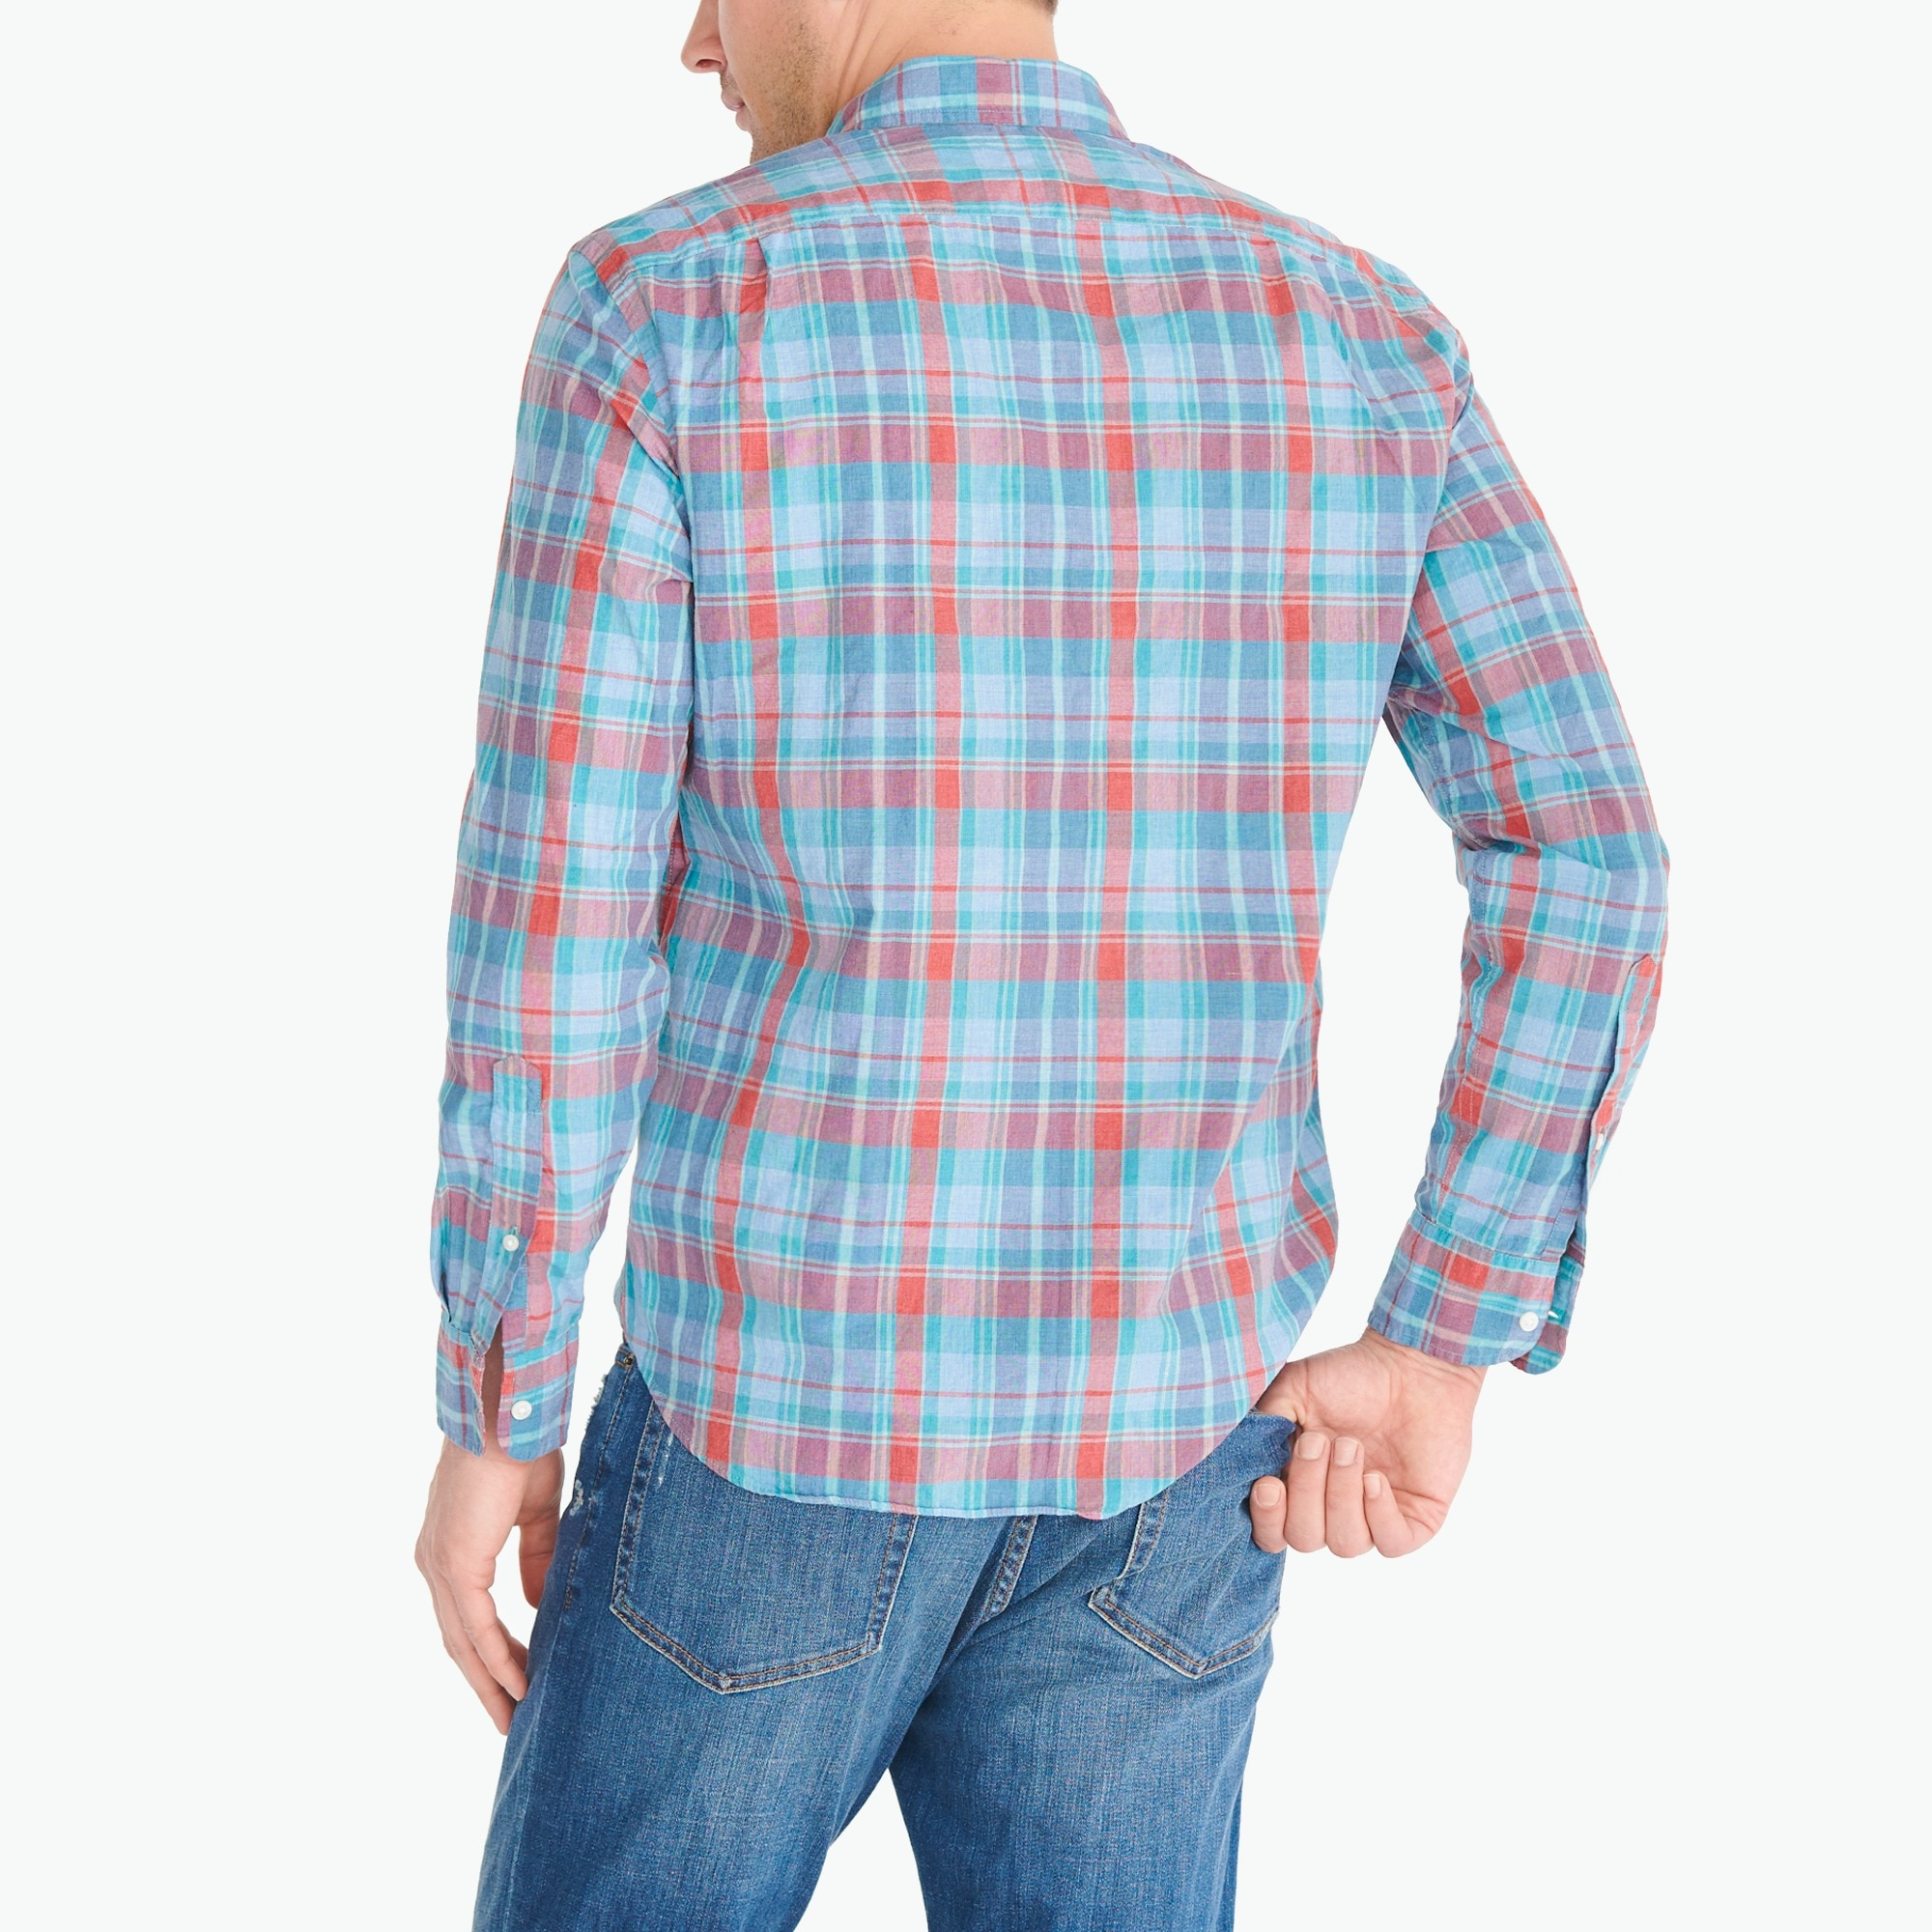 Heathered cotton plaid shirt